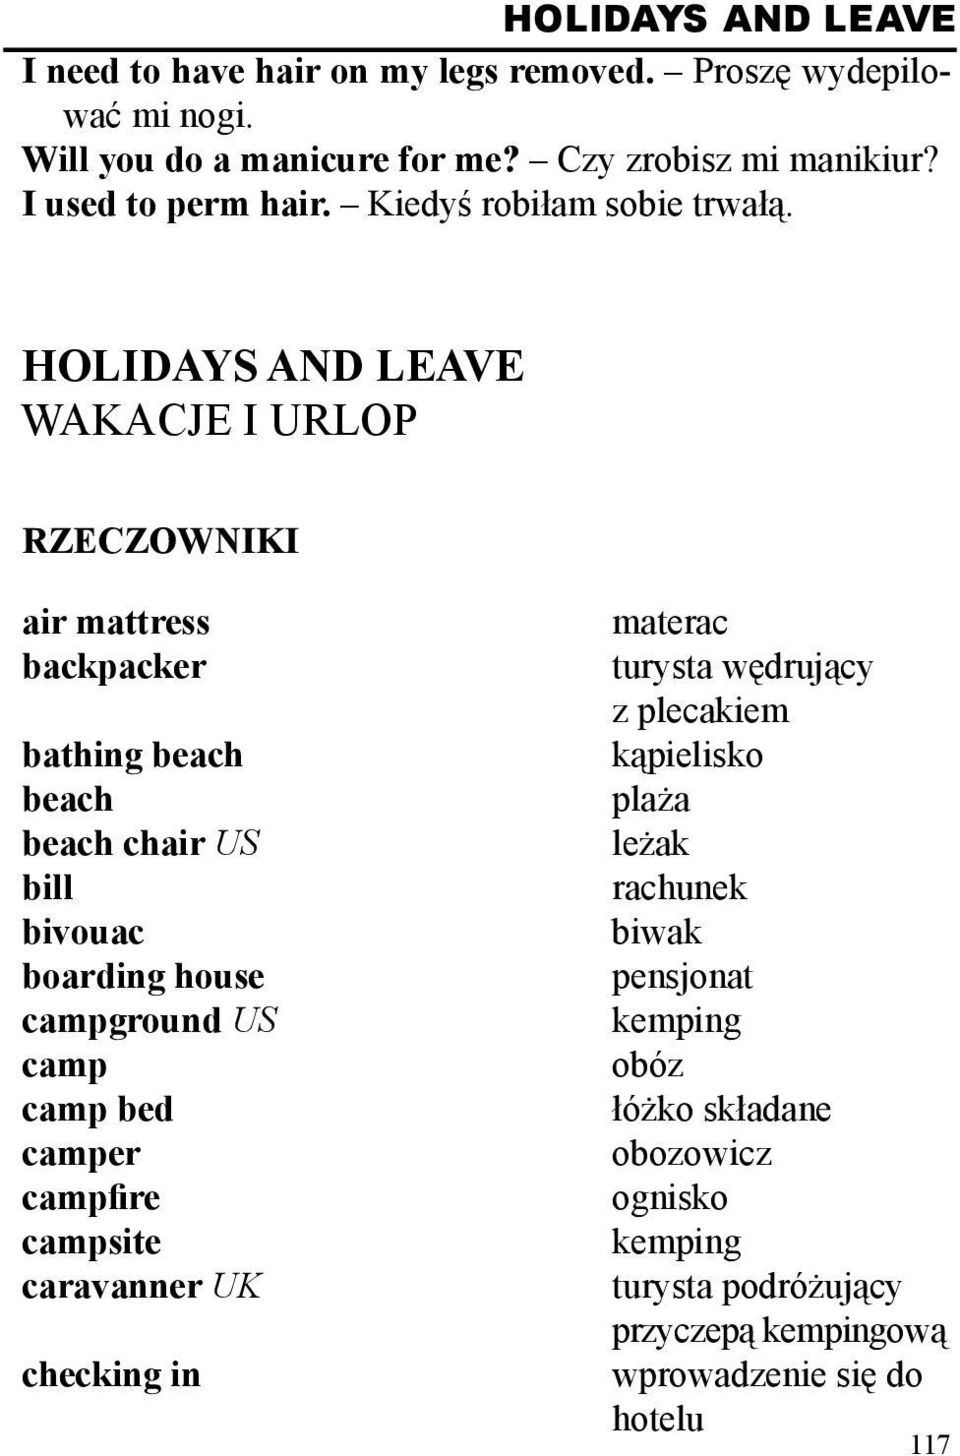 HOLIDAYS AND LEAVE WAKACJE I URLOP RZECZOWNIKI air mattress backpacker bathing beach beach beach chair US bill bivouac boarding house campground US camp